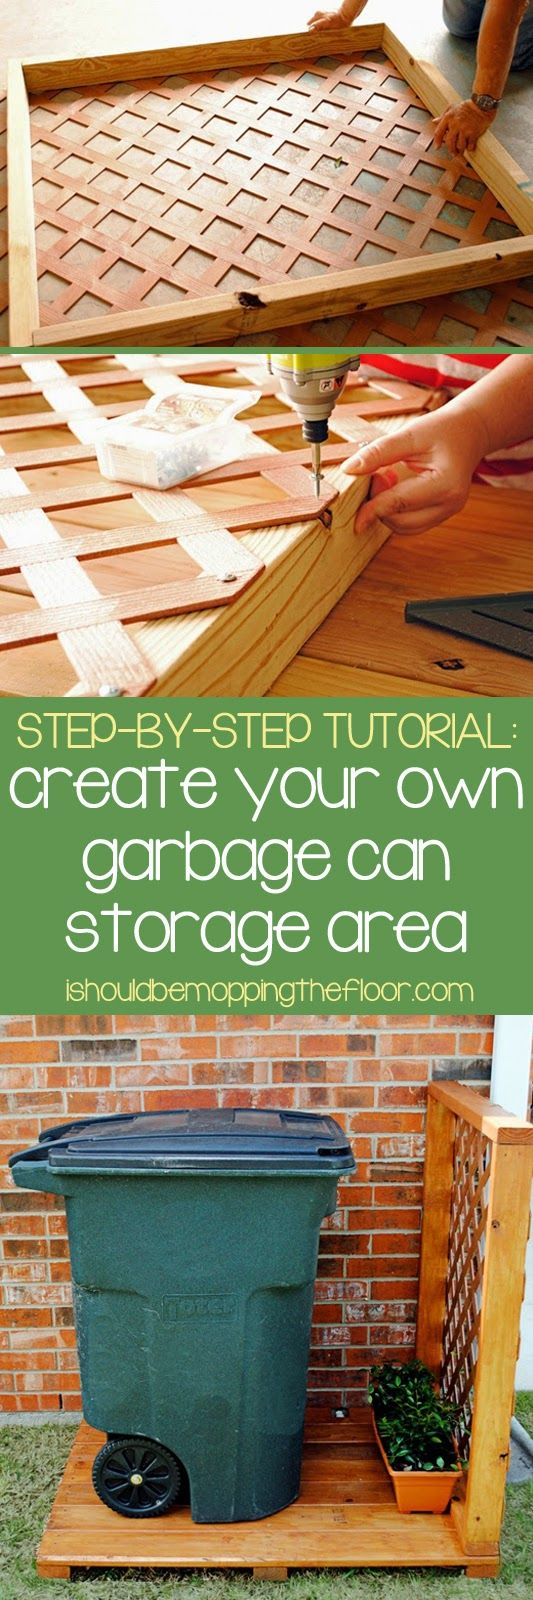 Create a Simple Garbage Can Storage Area.